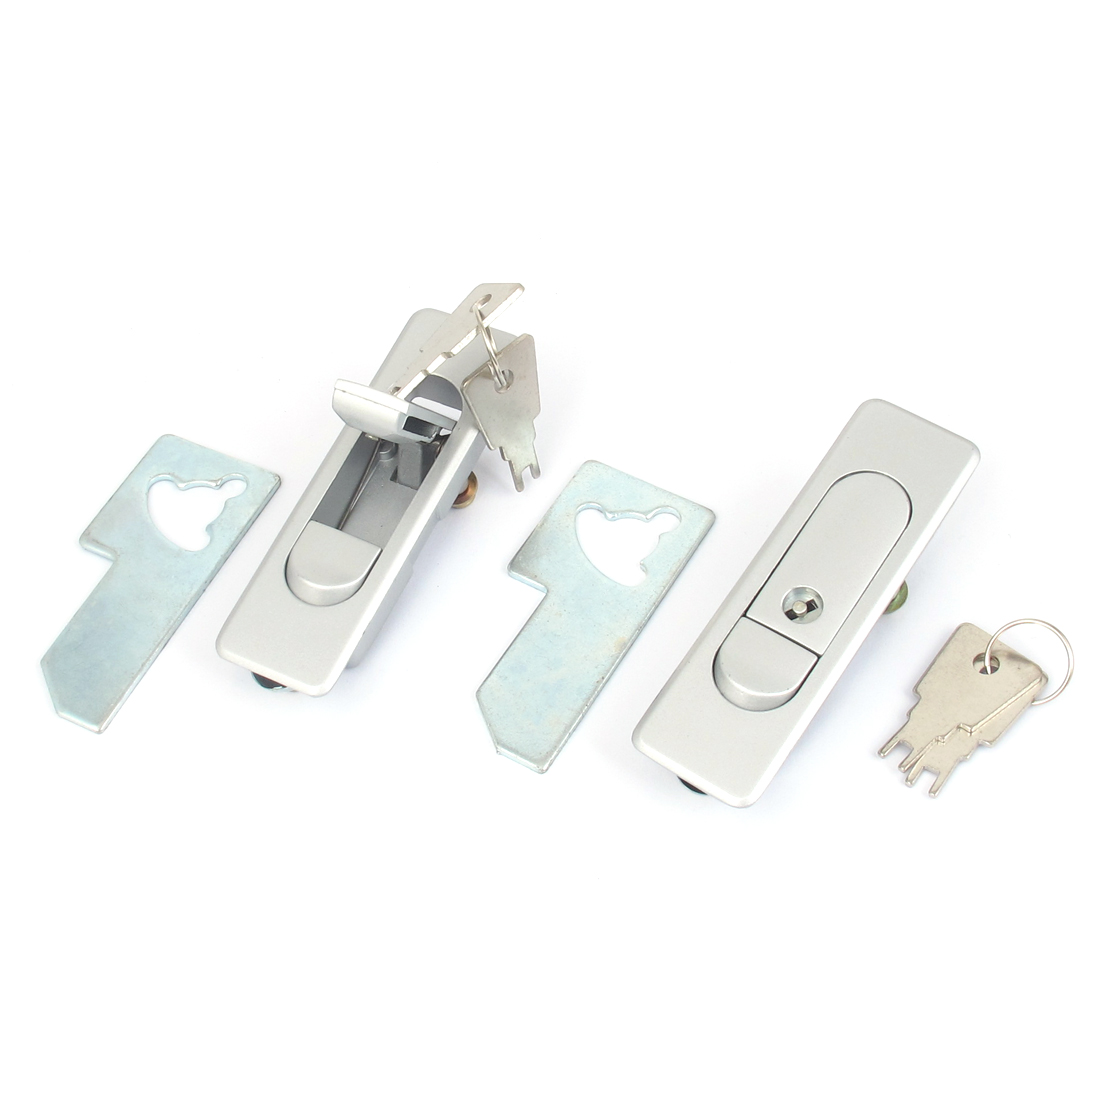 Electric Box Metal Pop up Push Button Security Plane Cam Locking Lock Latch 2pcs